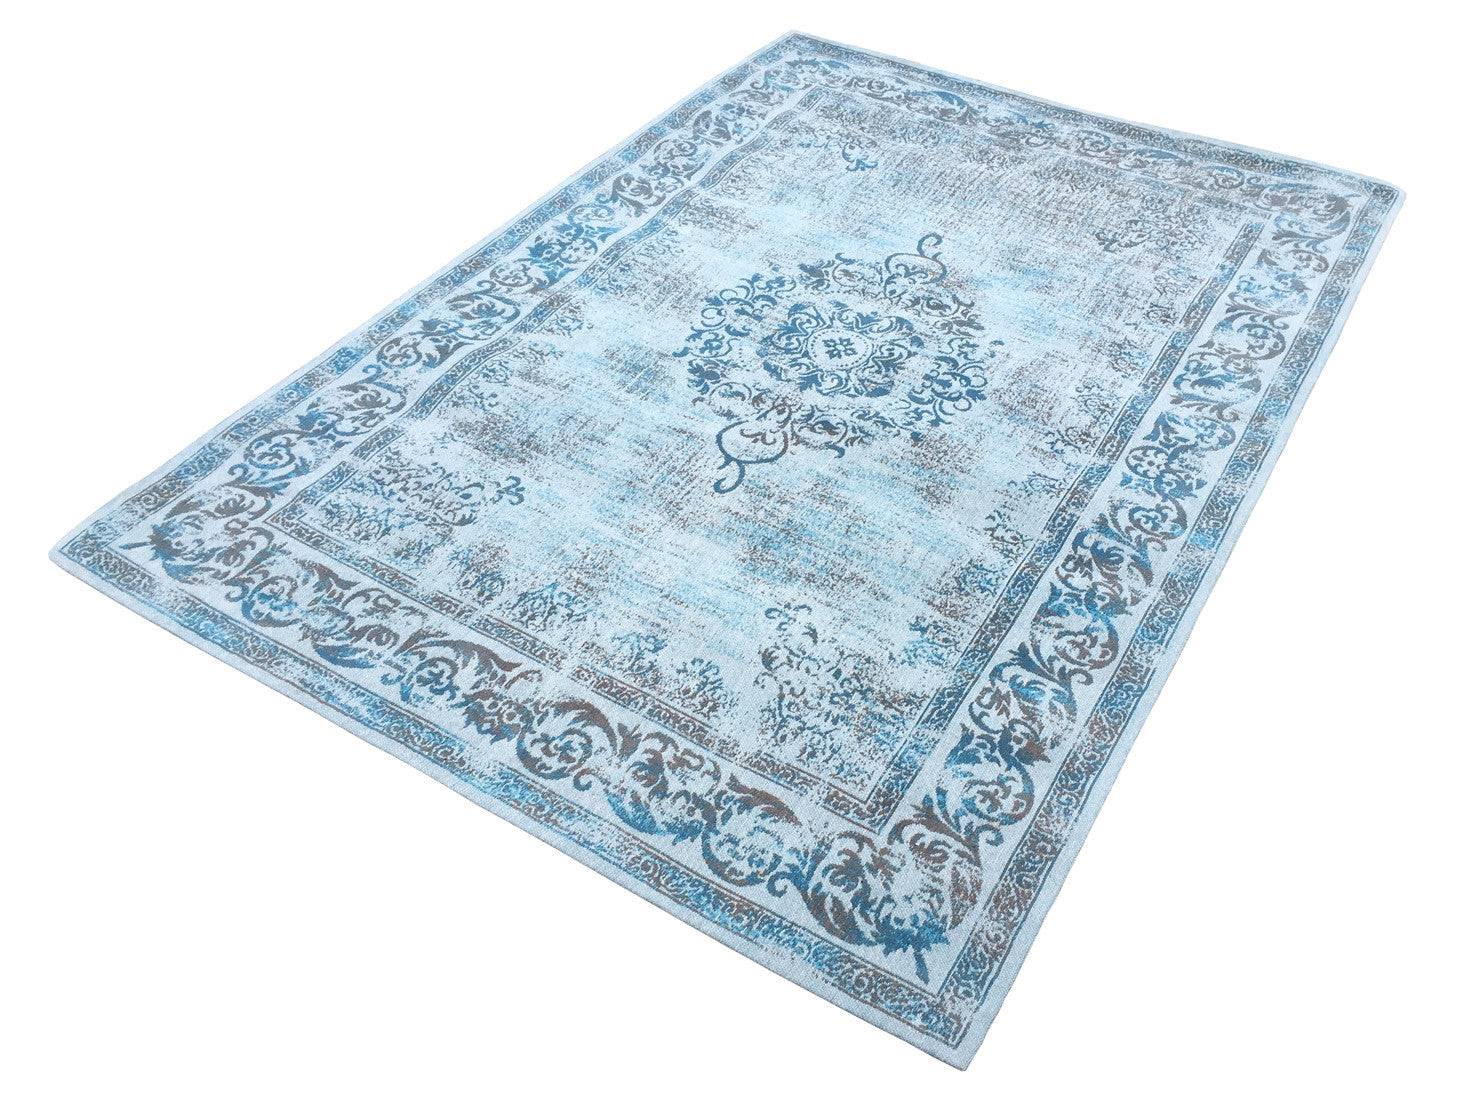 Vintage Azur Blue Rug - greendecore.co.uk - 4